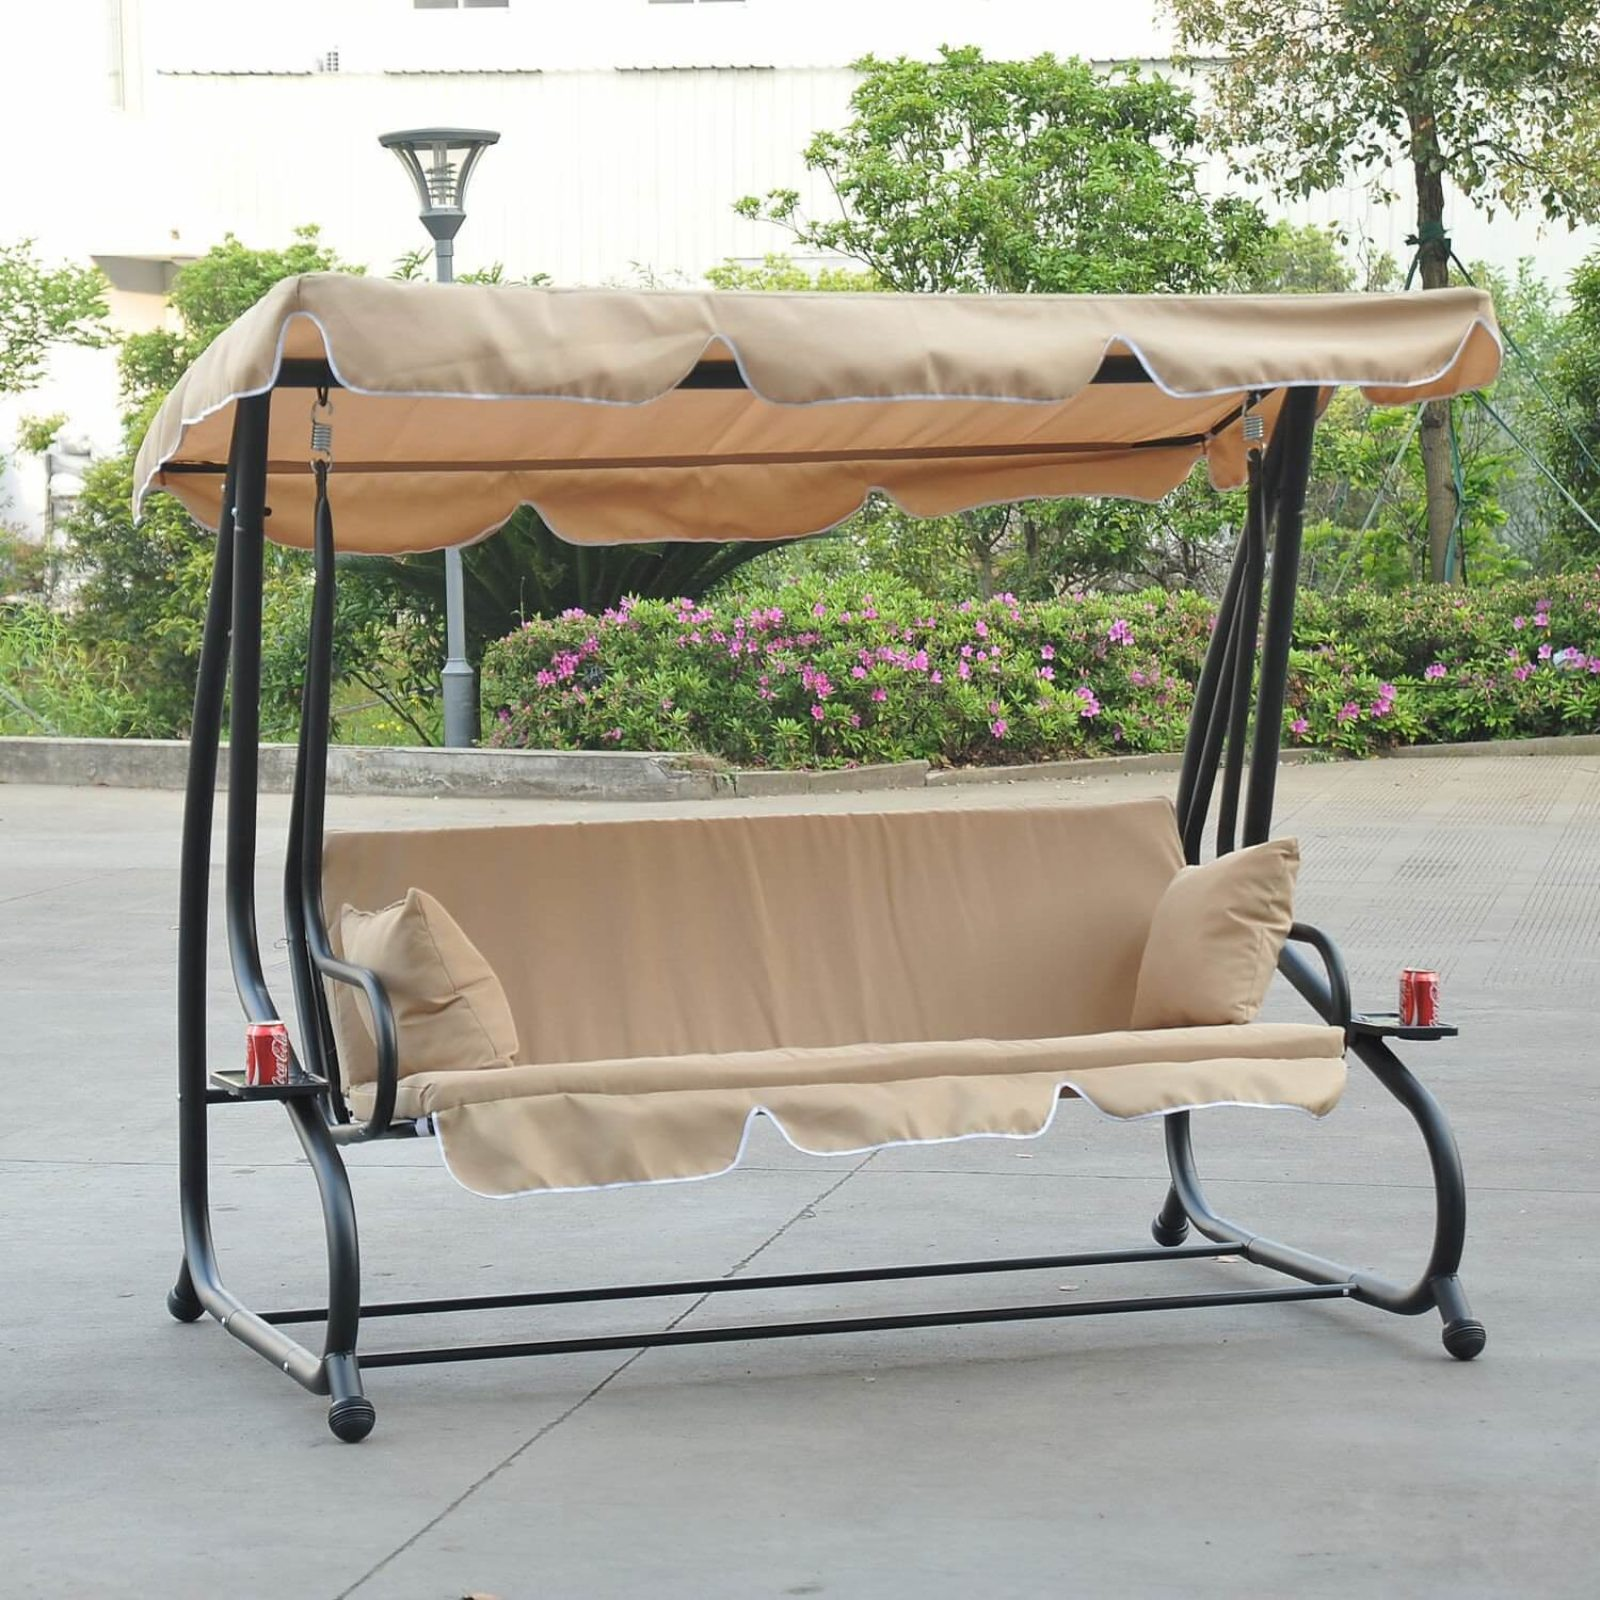 Outsunny Covered Outdoor Porch Swing Reviews